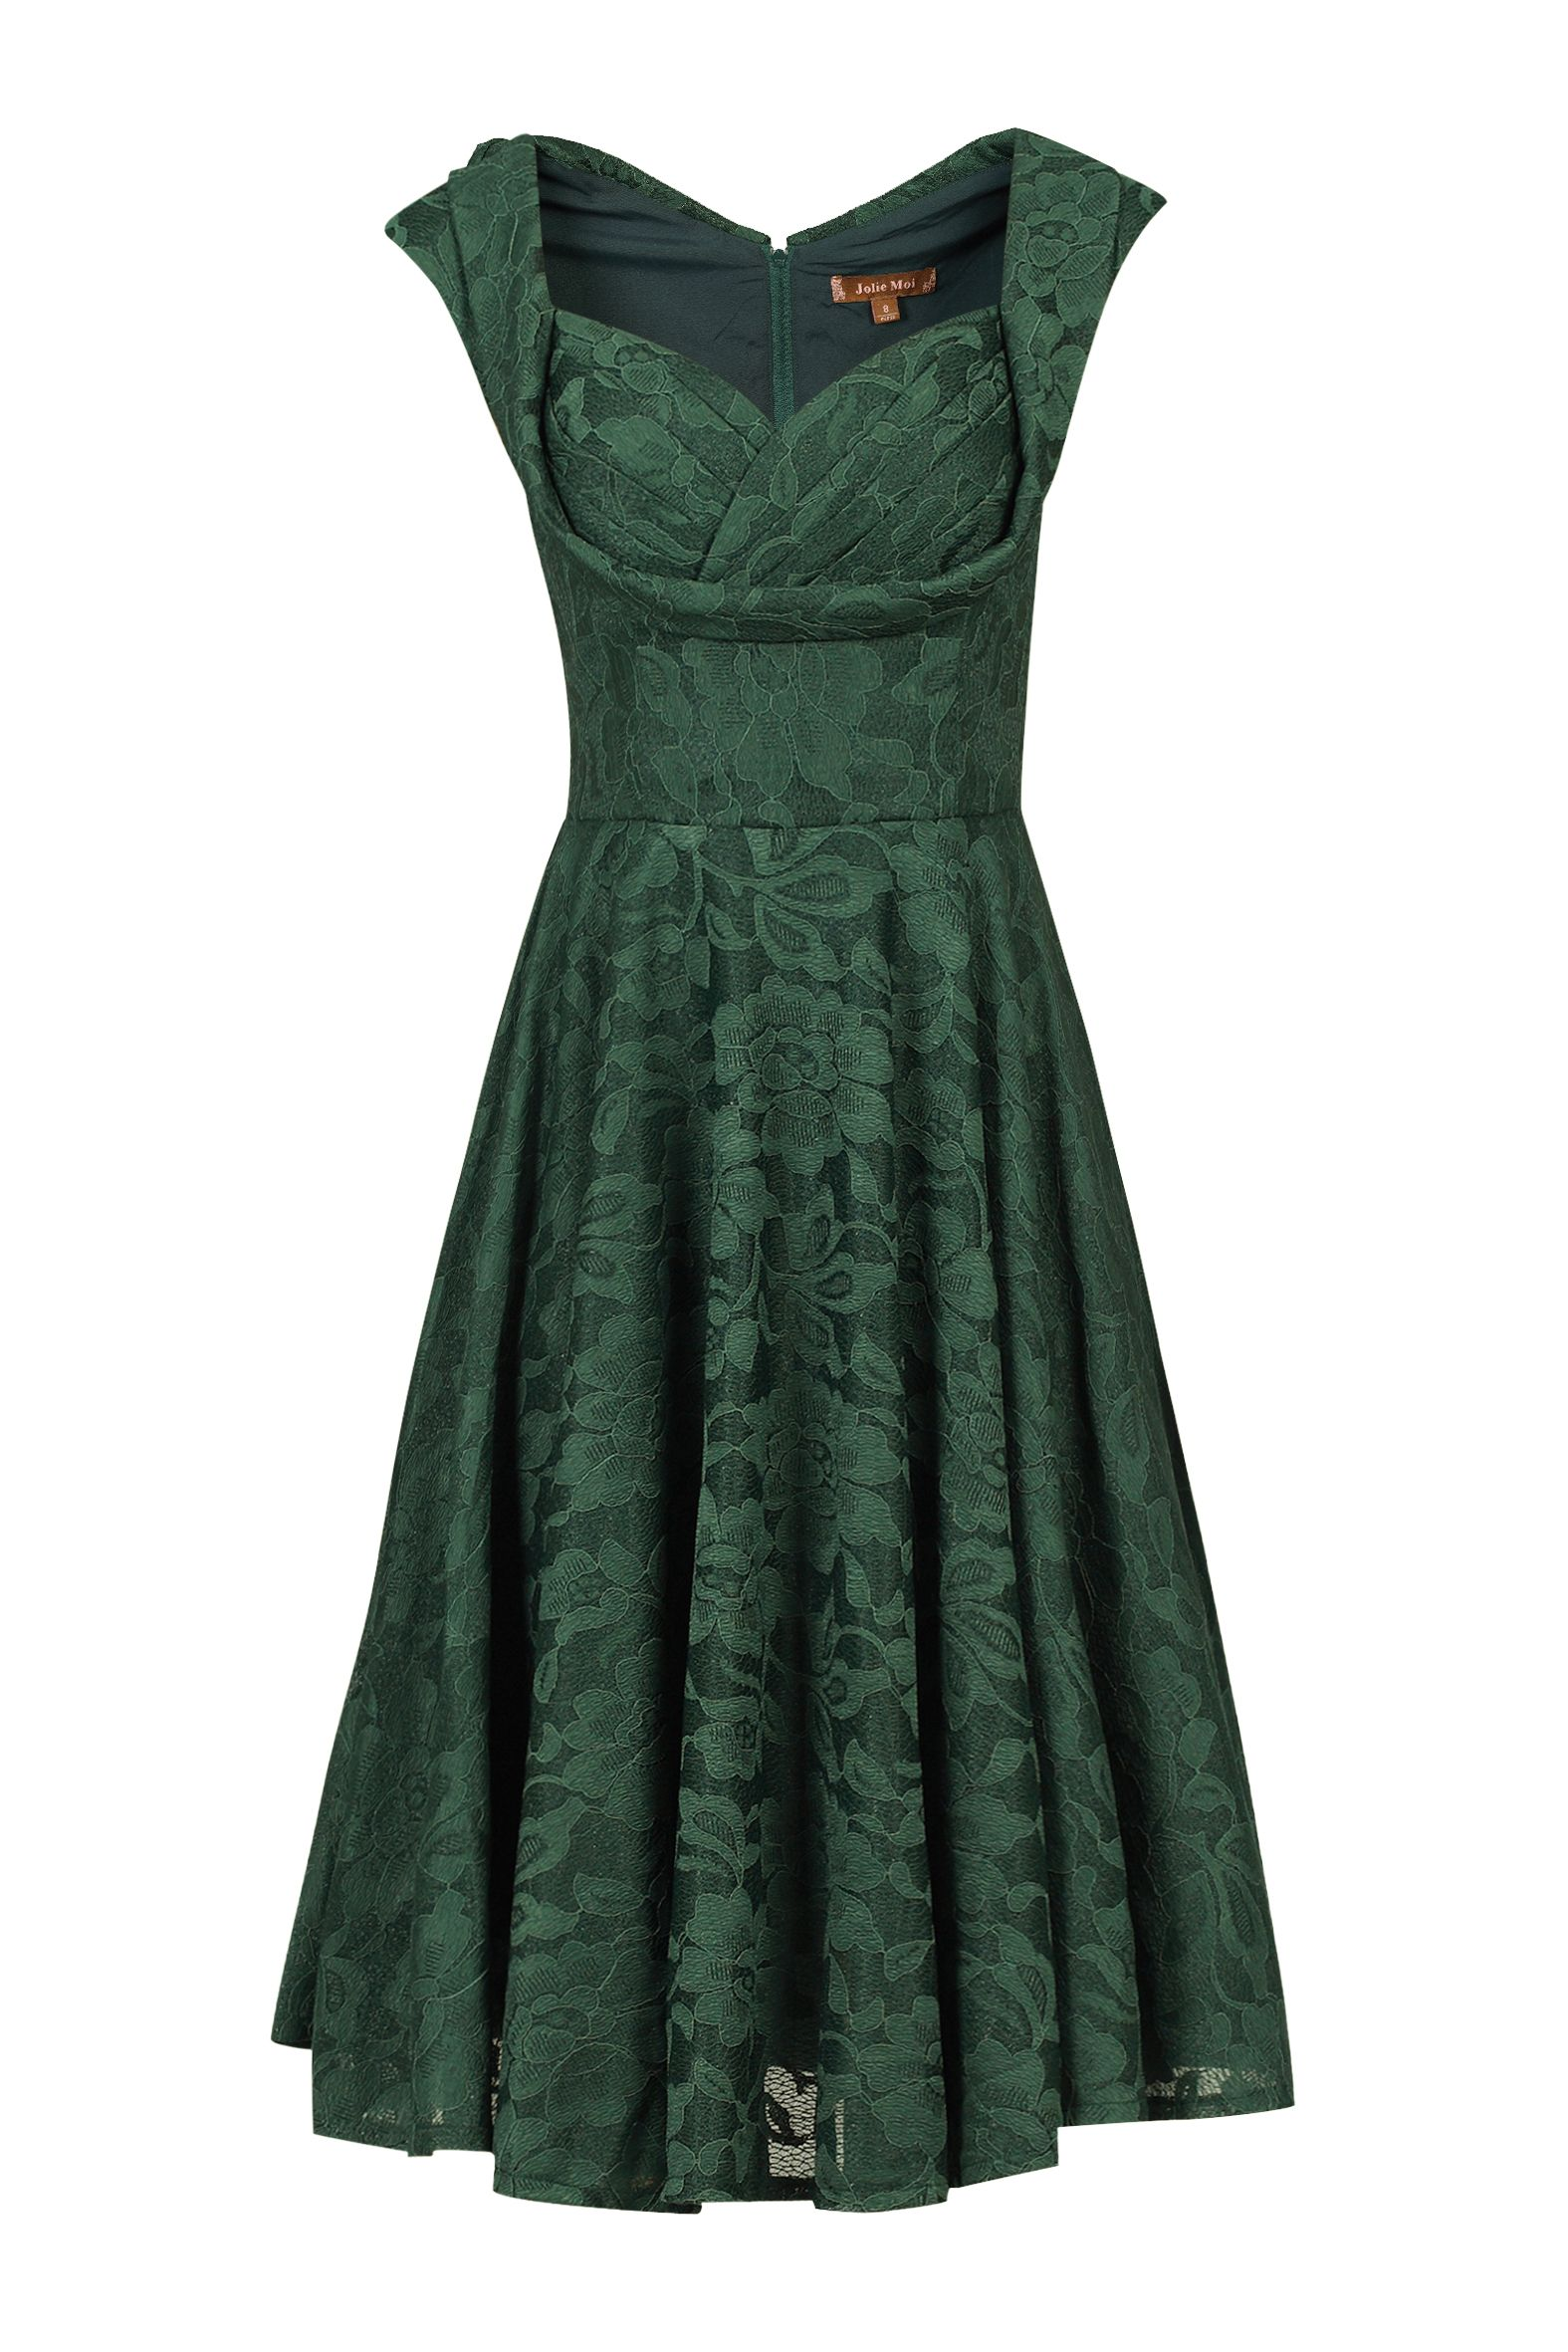 Jolie Moi Ruched Crossover Bust Prom Dress, Dark Green